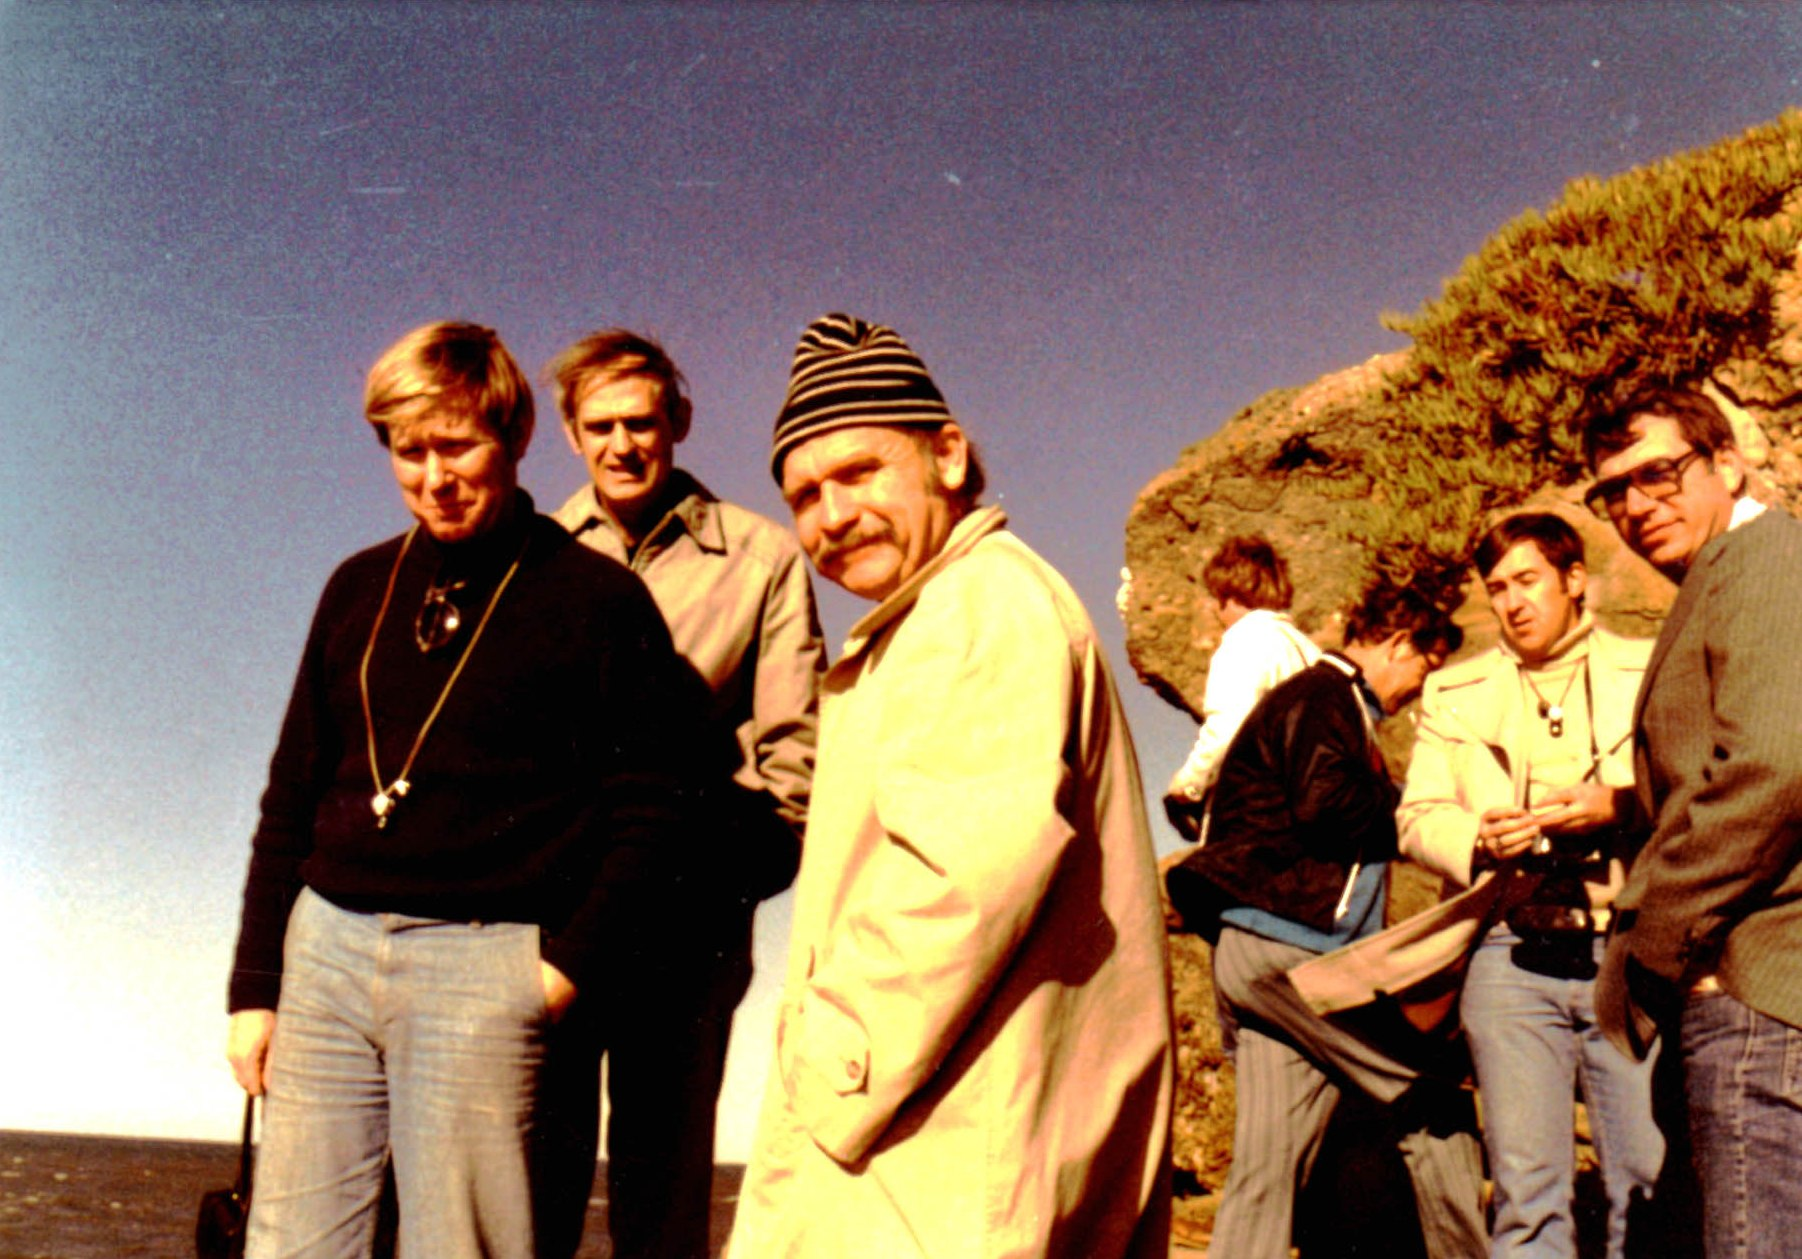 John Dewey and colleagues at Pigeon Point, California, 1974